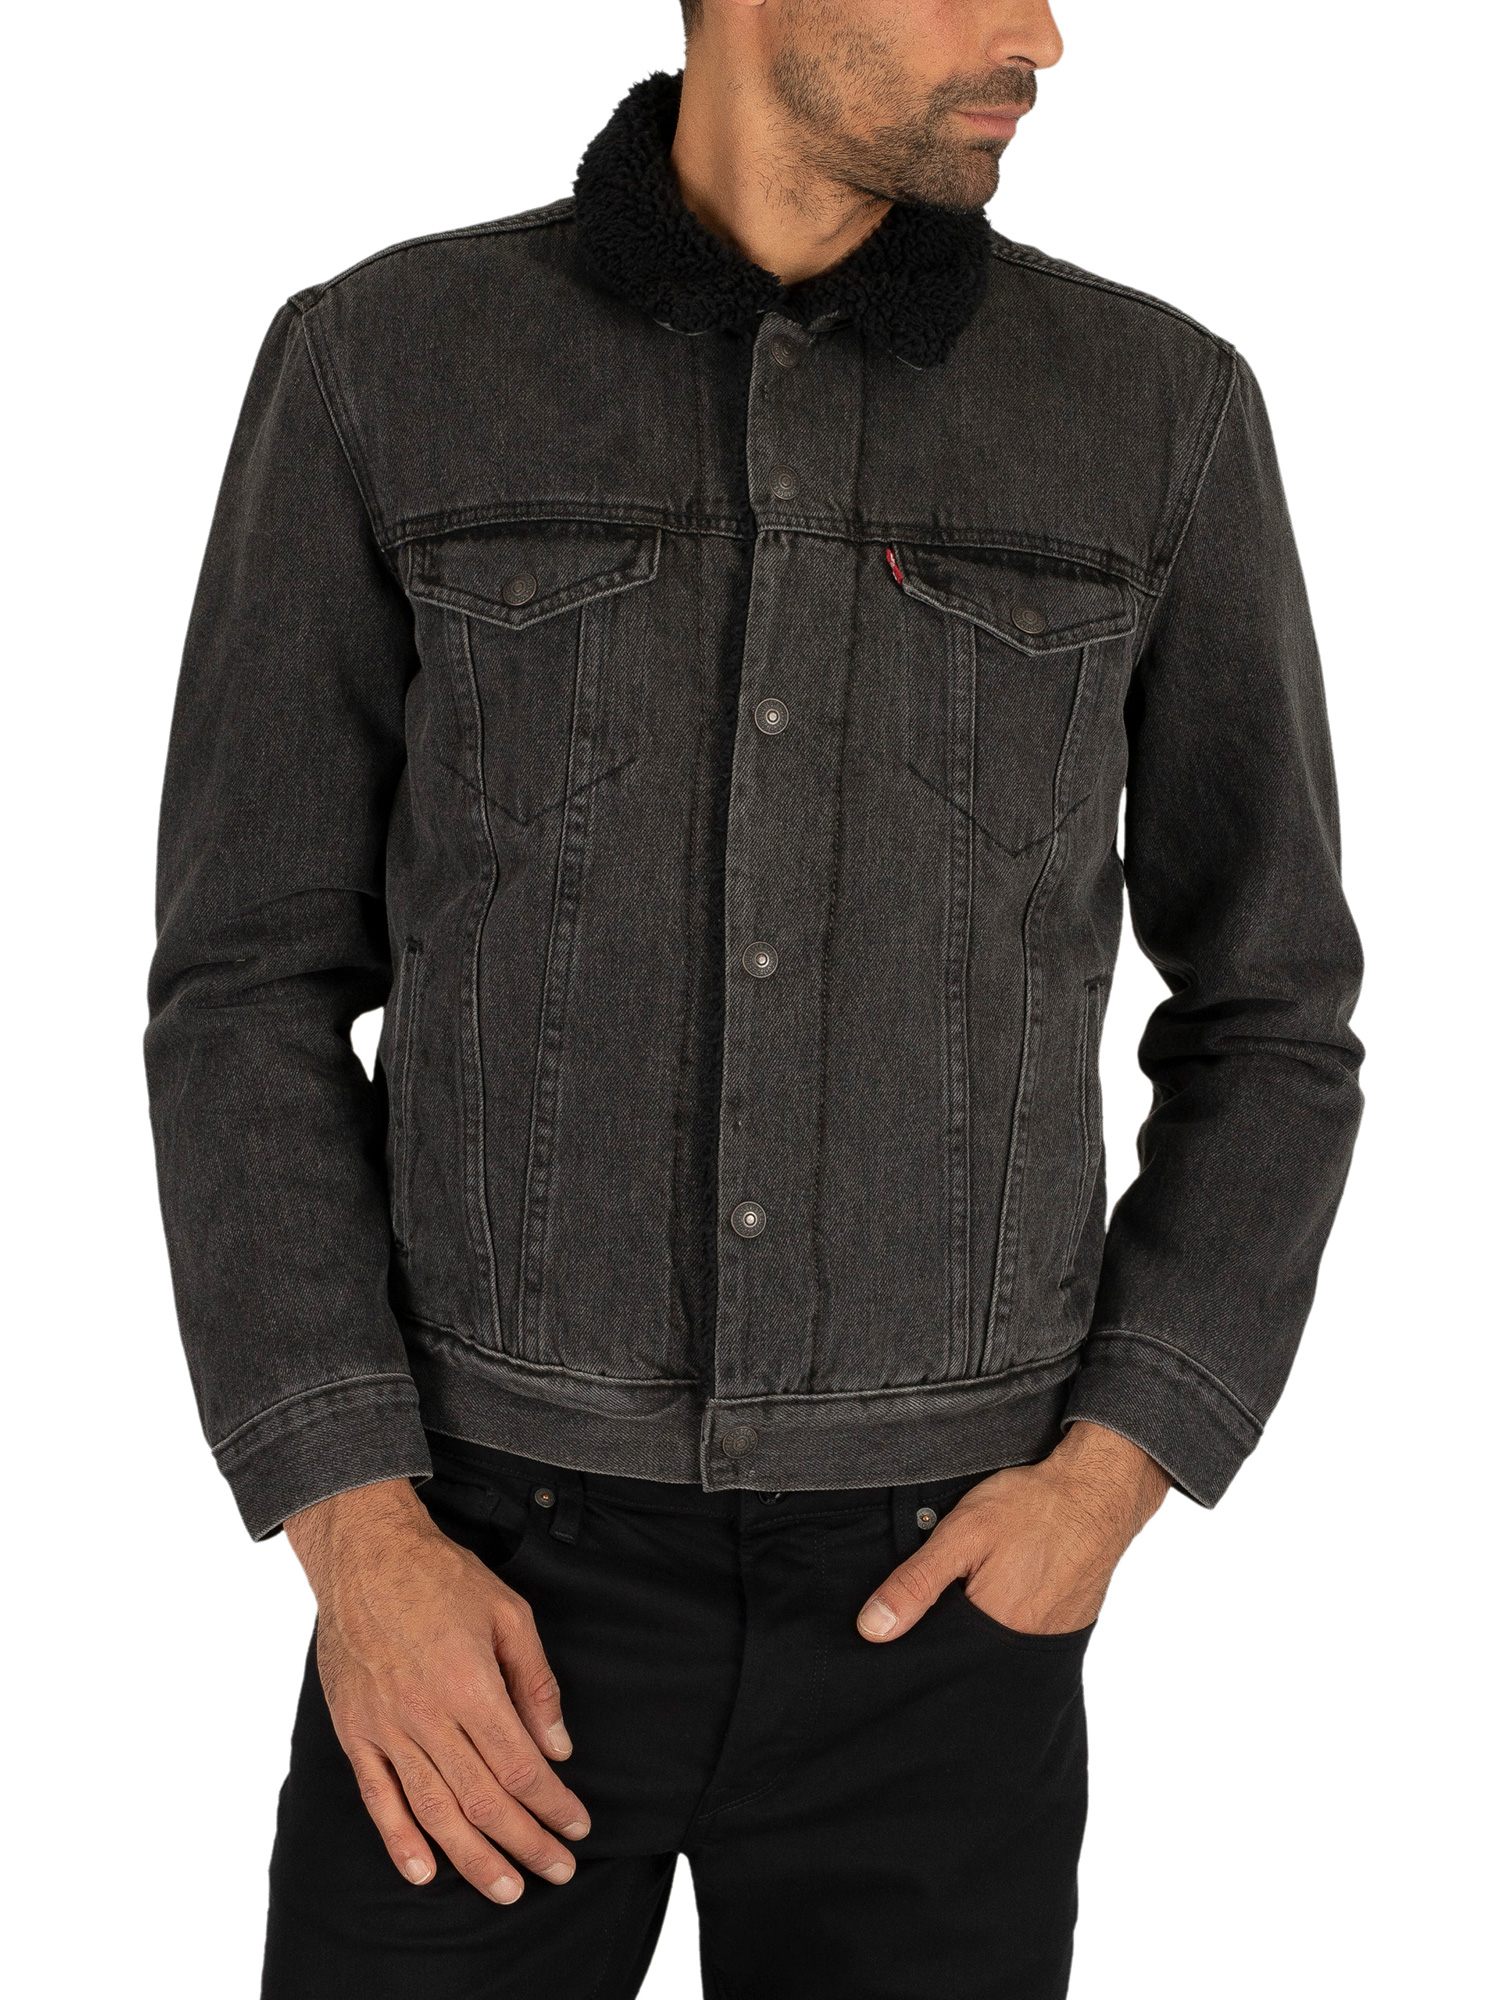 Levi's Type 3 Sherpa Trucker Jacket - Embossed Logo